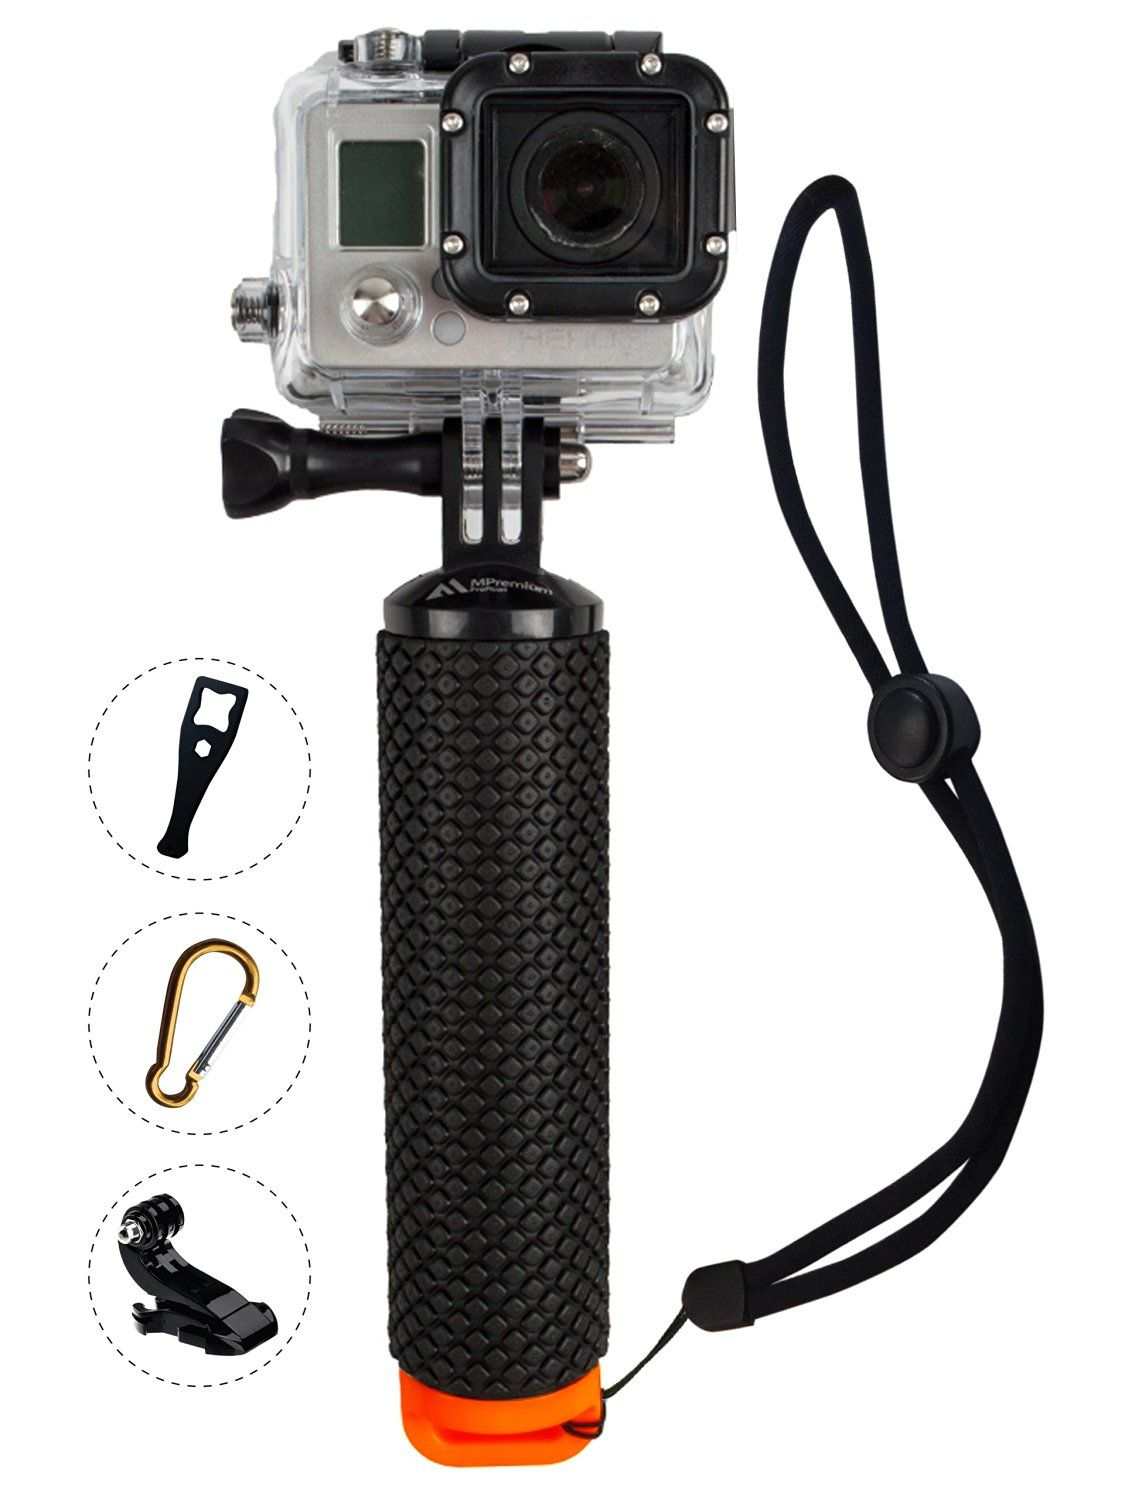 60m Underwater Waterproof Diving Housing Case For Gopro Hero4 Session Hero 5 Session Camera Check More At Https Action Camera Accessories Gopro Hero 4 Gopro Hd